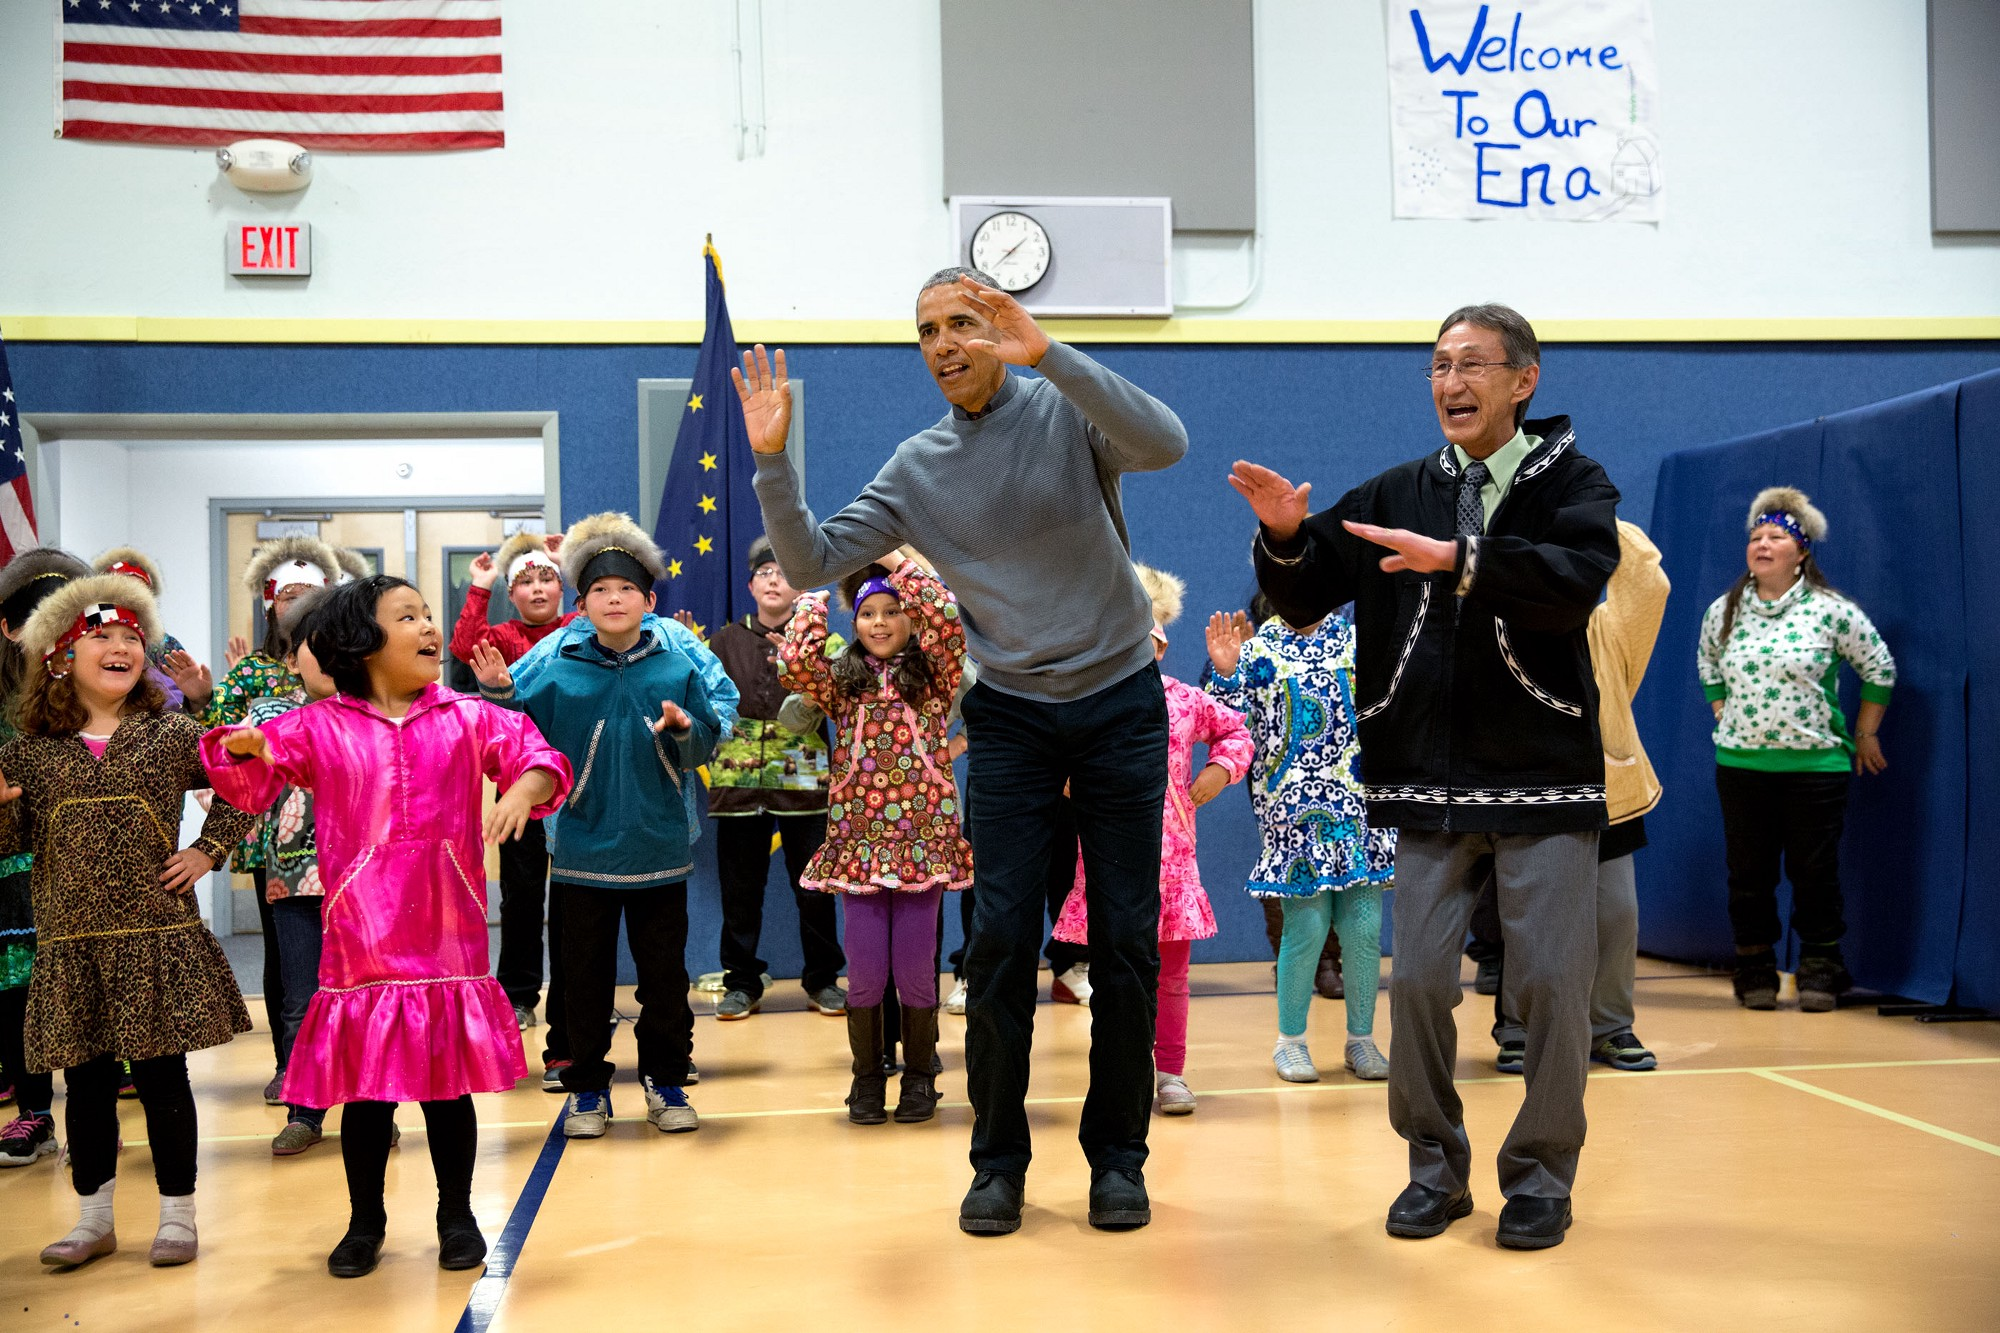 """The President joins locals during a cultural dance performance at Dillingham Middle School in Dillingham, Alaska."" (Official White House Photo by Pete Souza)"